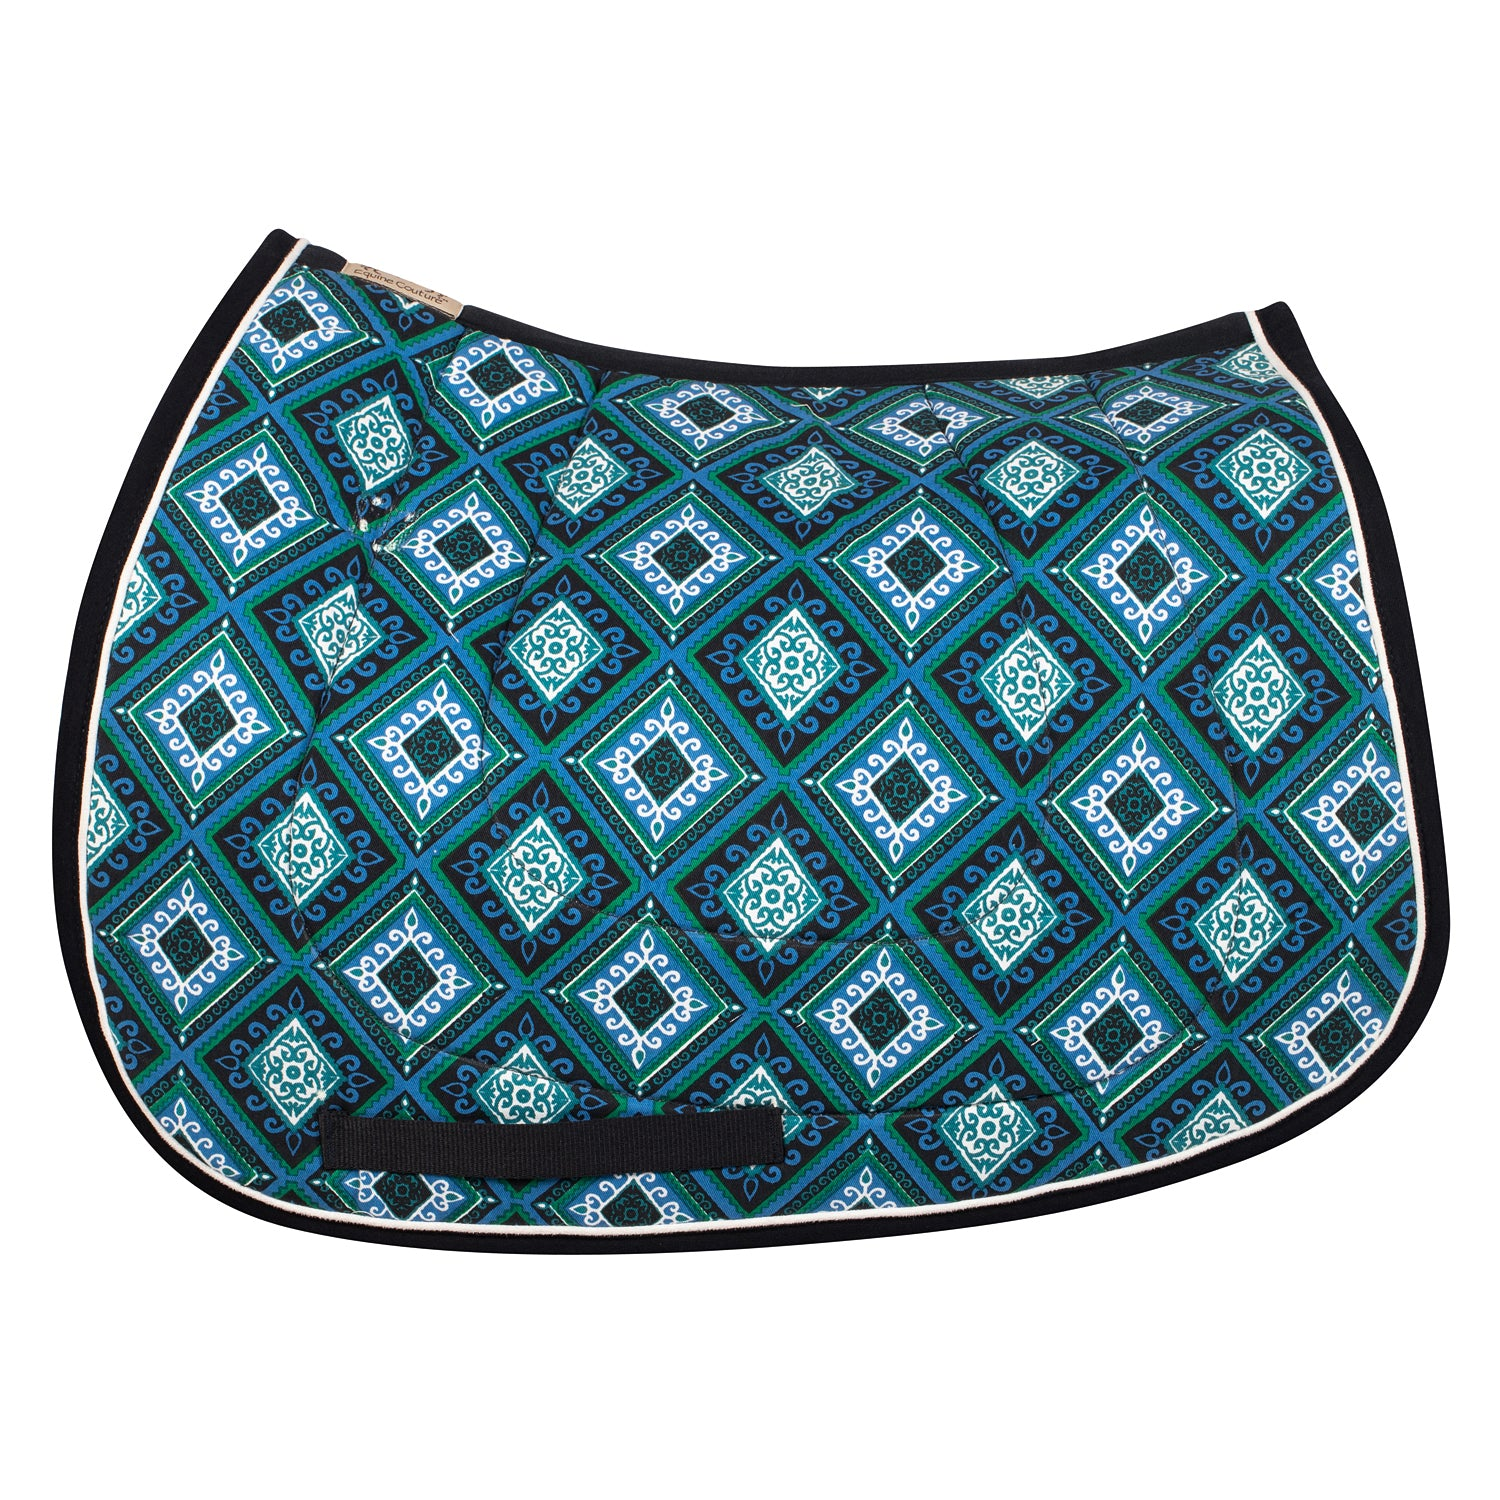 Artemis Pony Saddle Pad - Equine Couture - Breeches.com